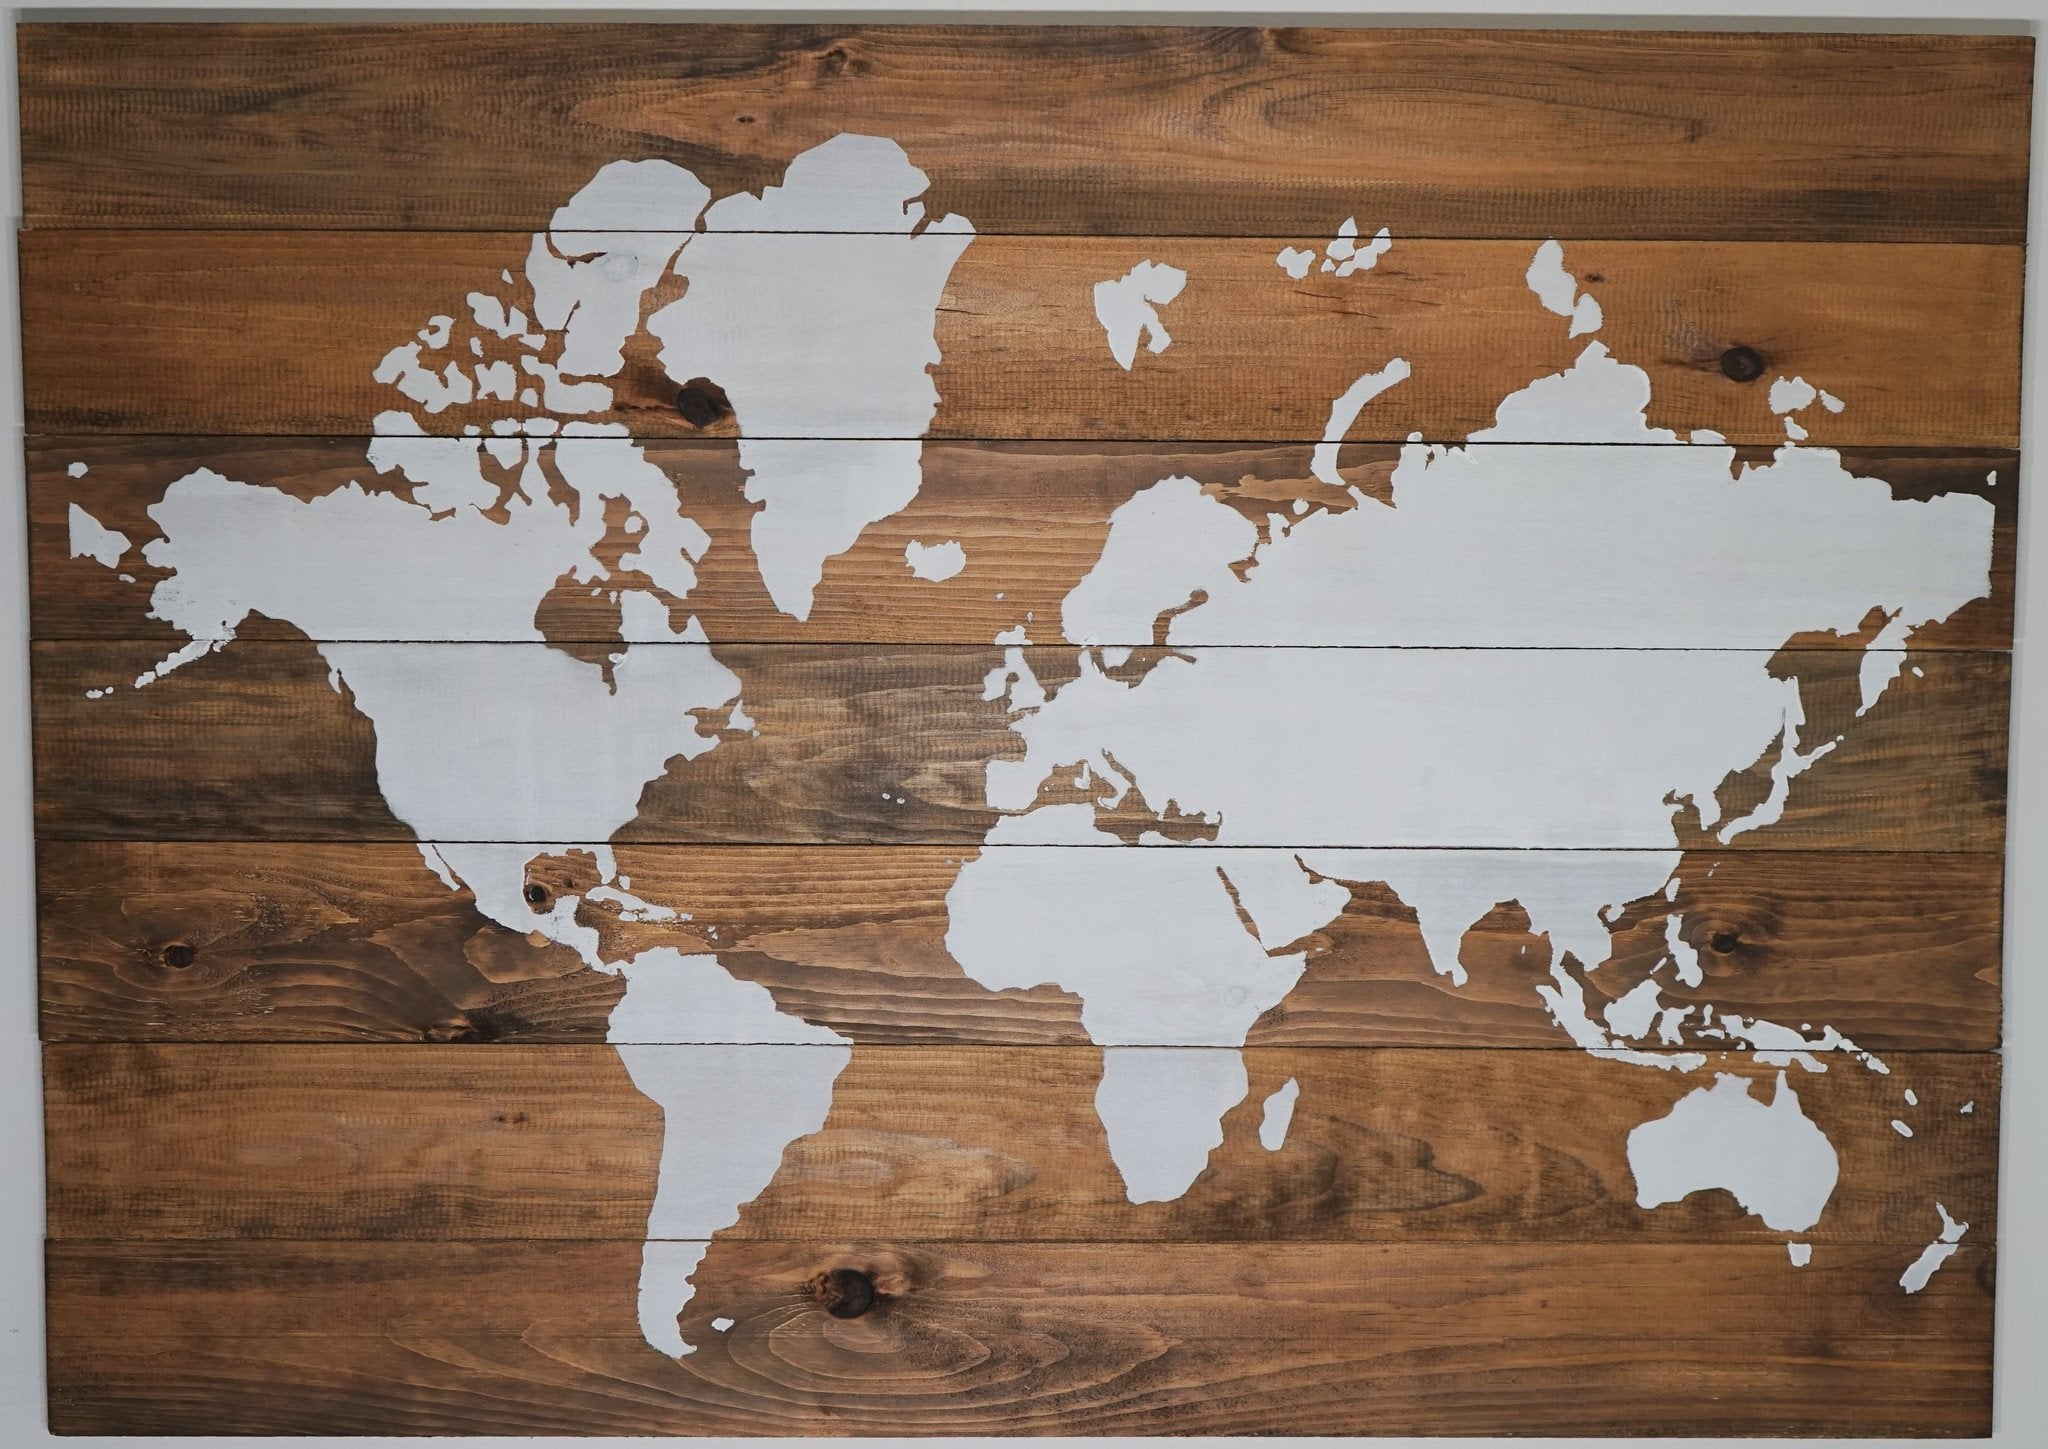 Medium Brown | World Map on Wood | 36 x 28 - Aries Den